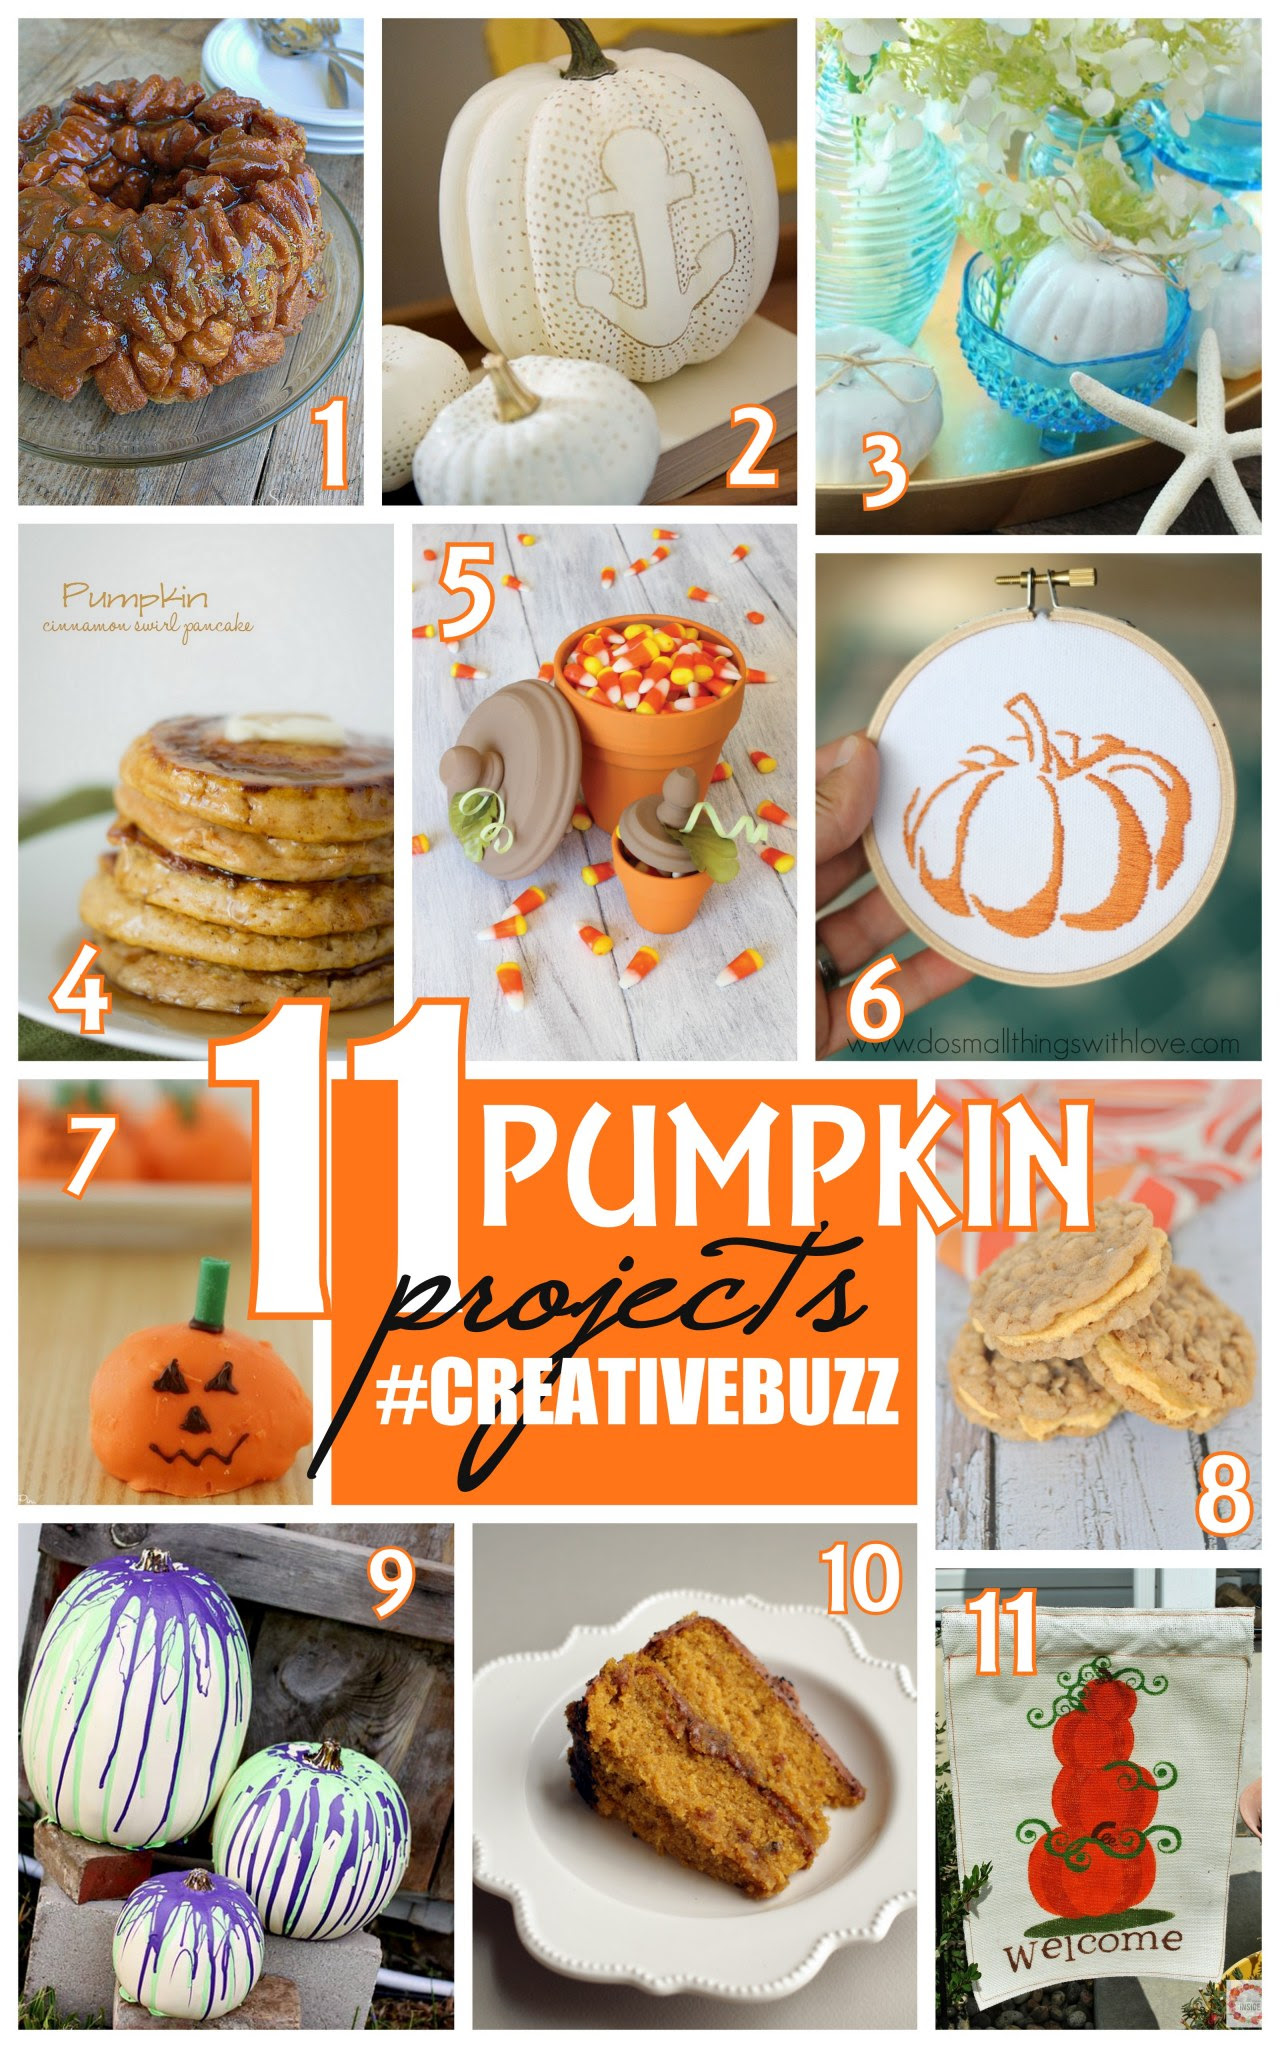 Pumpkin Creativebuzz